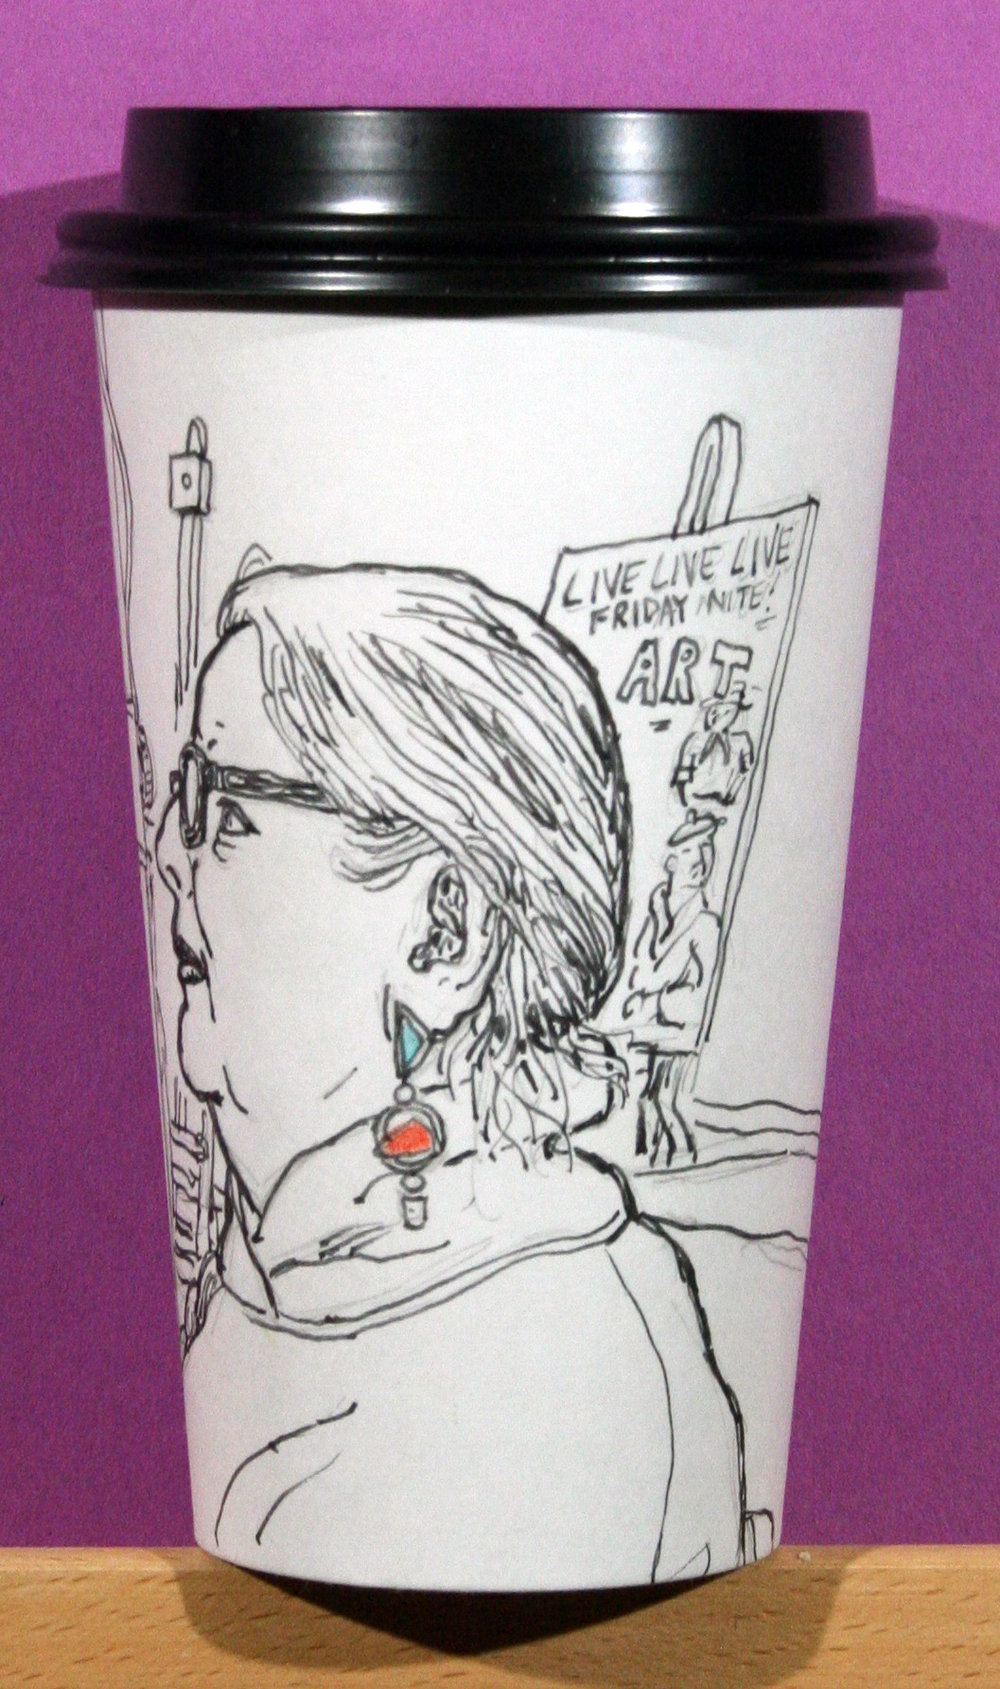 More detail of Jack Flotte's coffee cup.